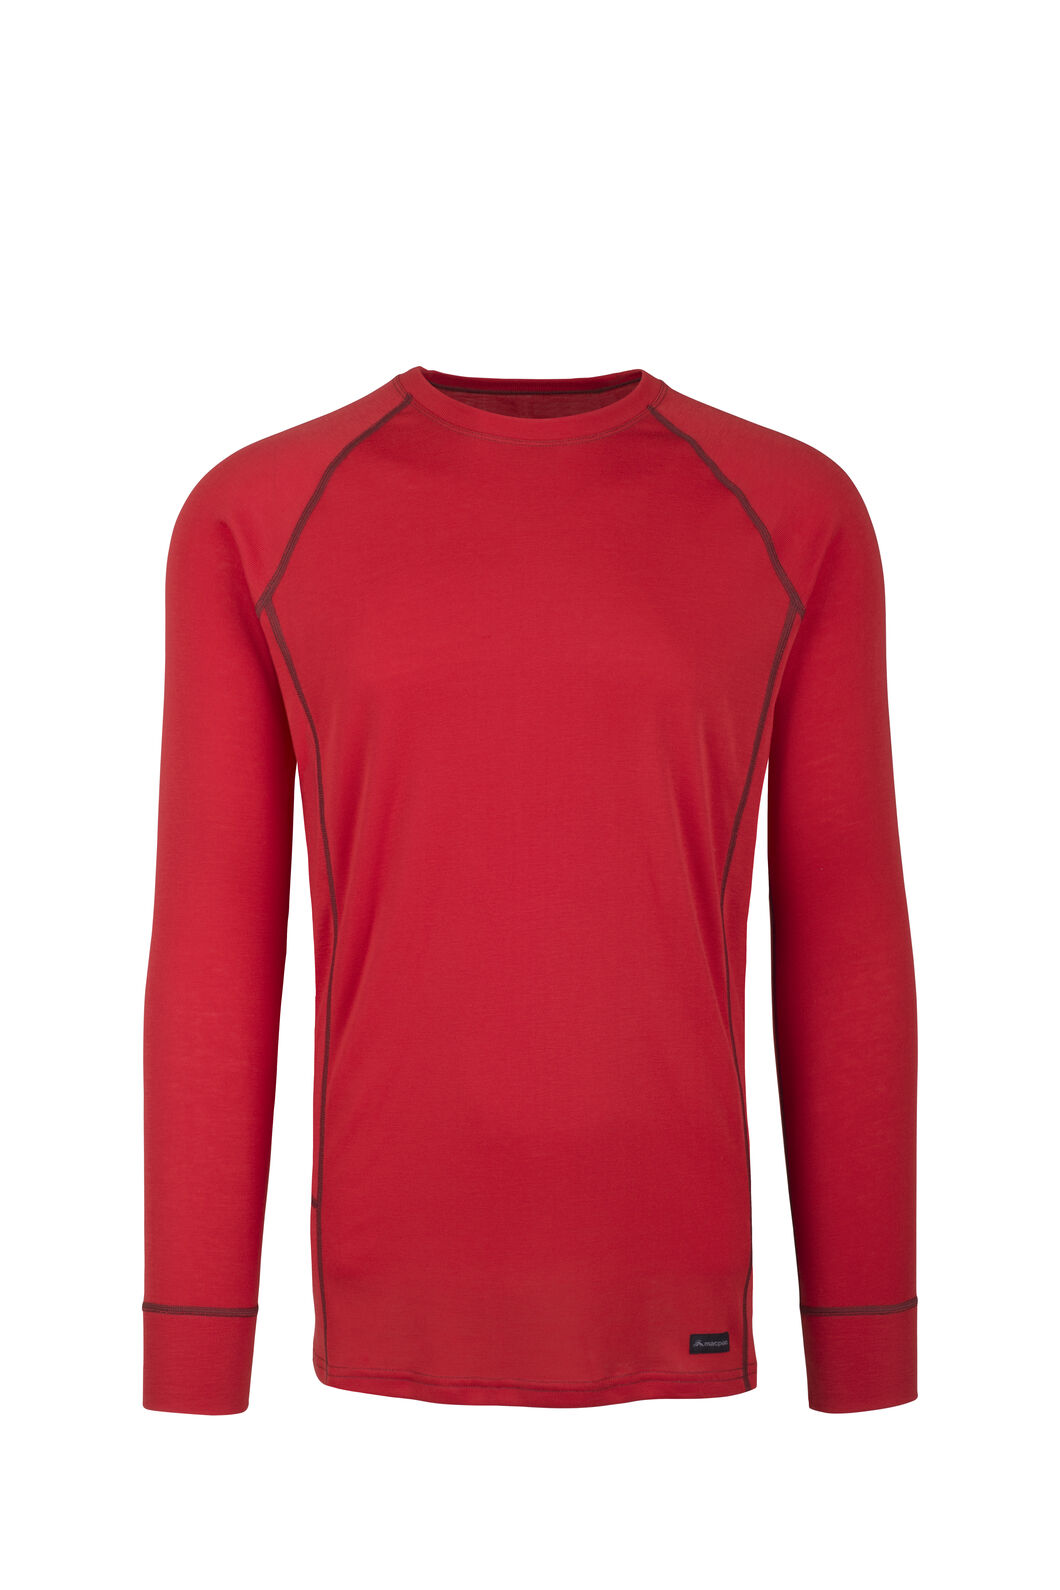 Macpac Geothermal Long Sleeve Top - Men's, Molten Lava/Henna, hi-res